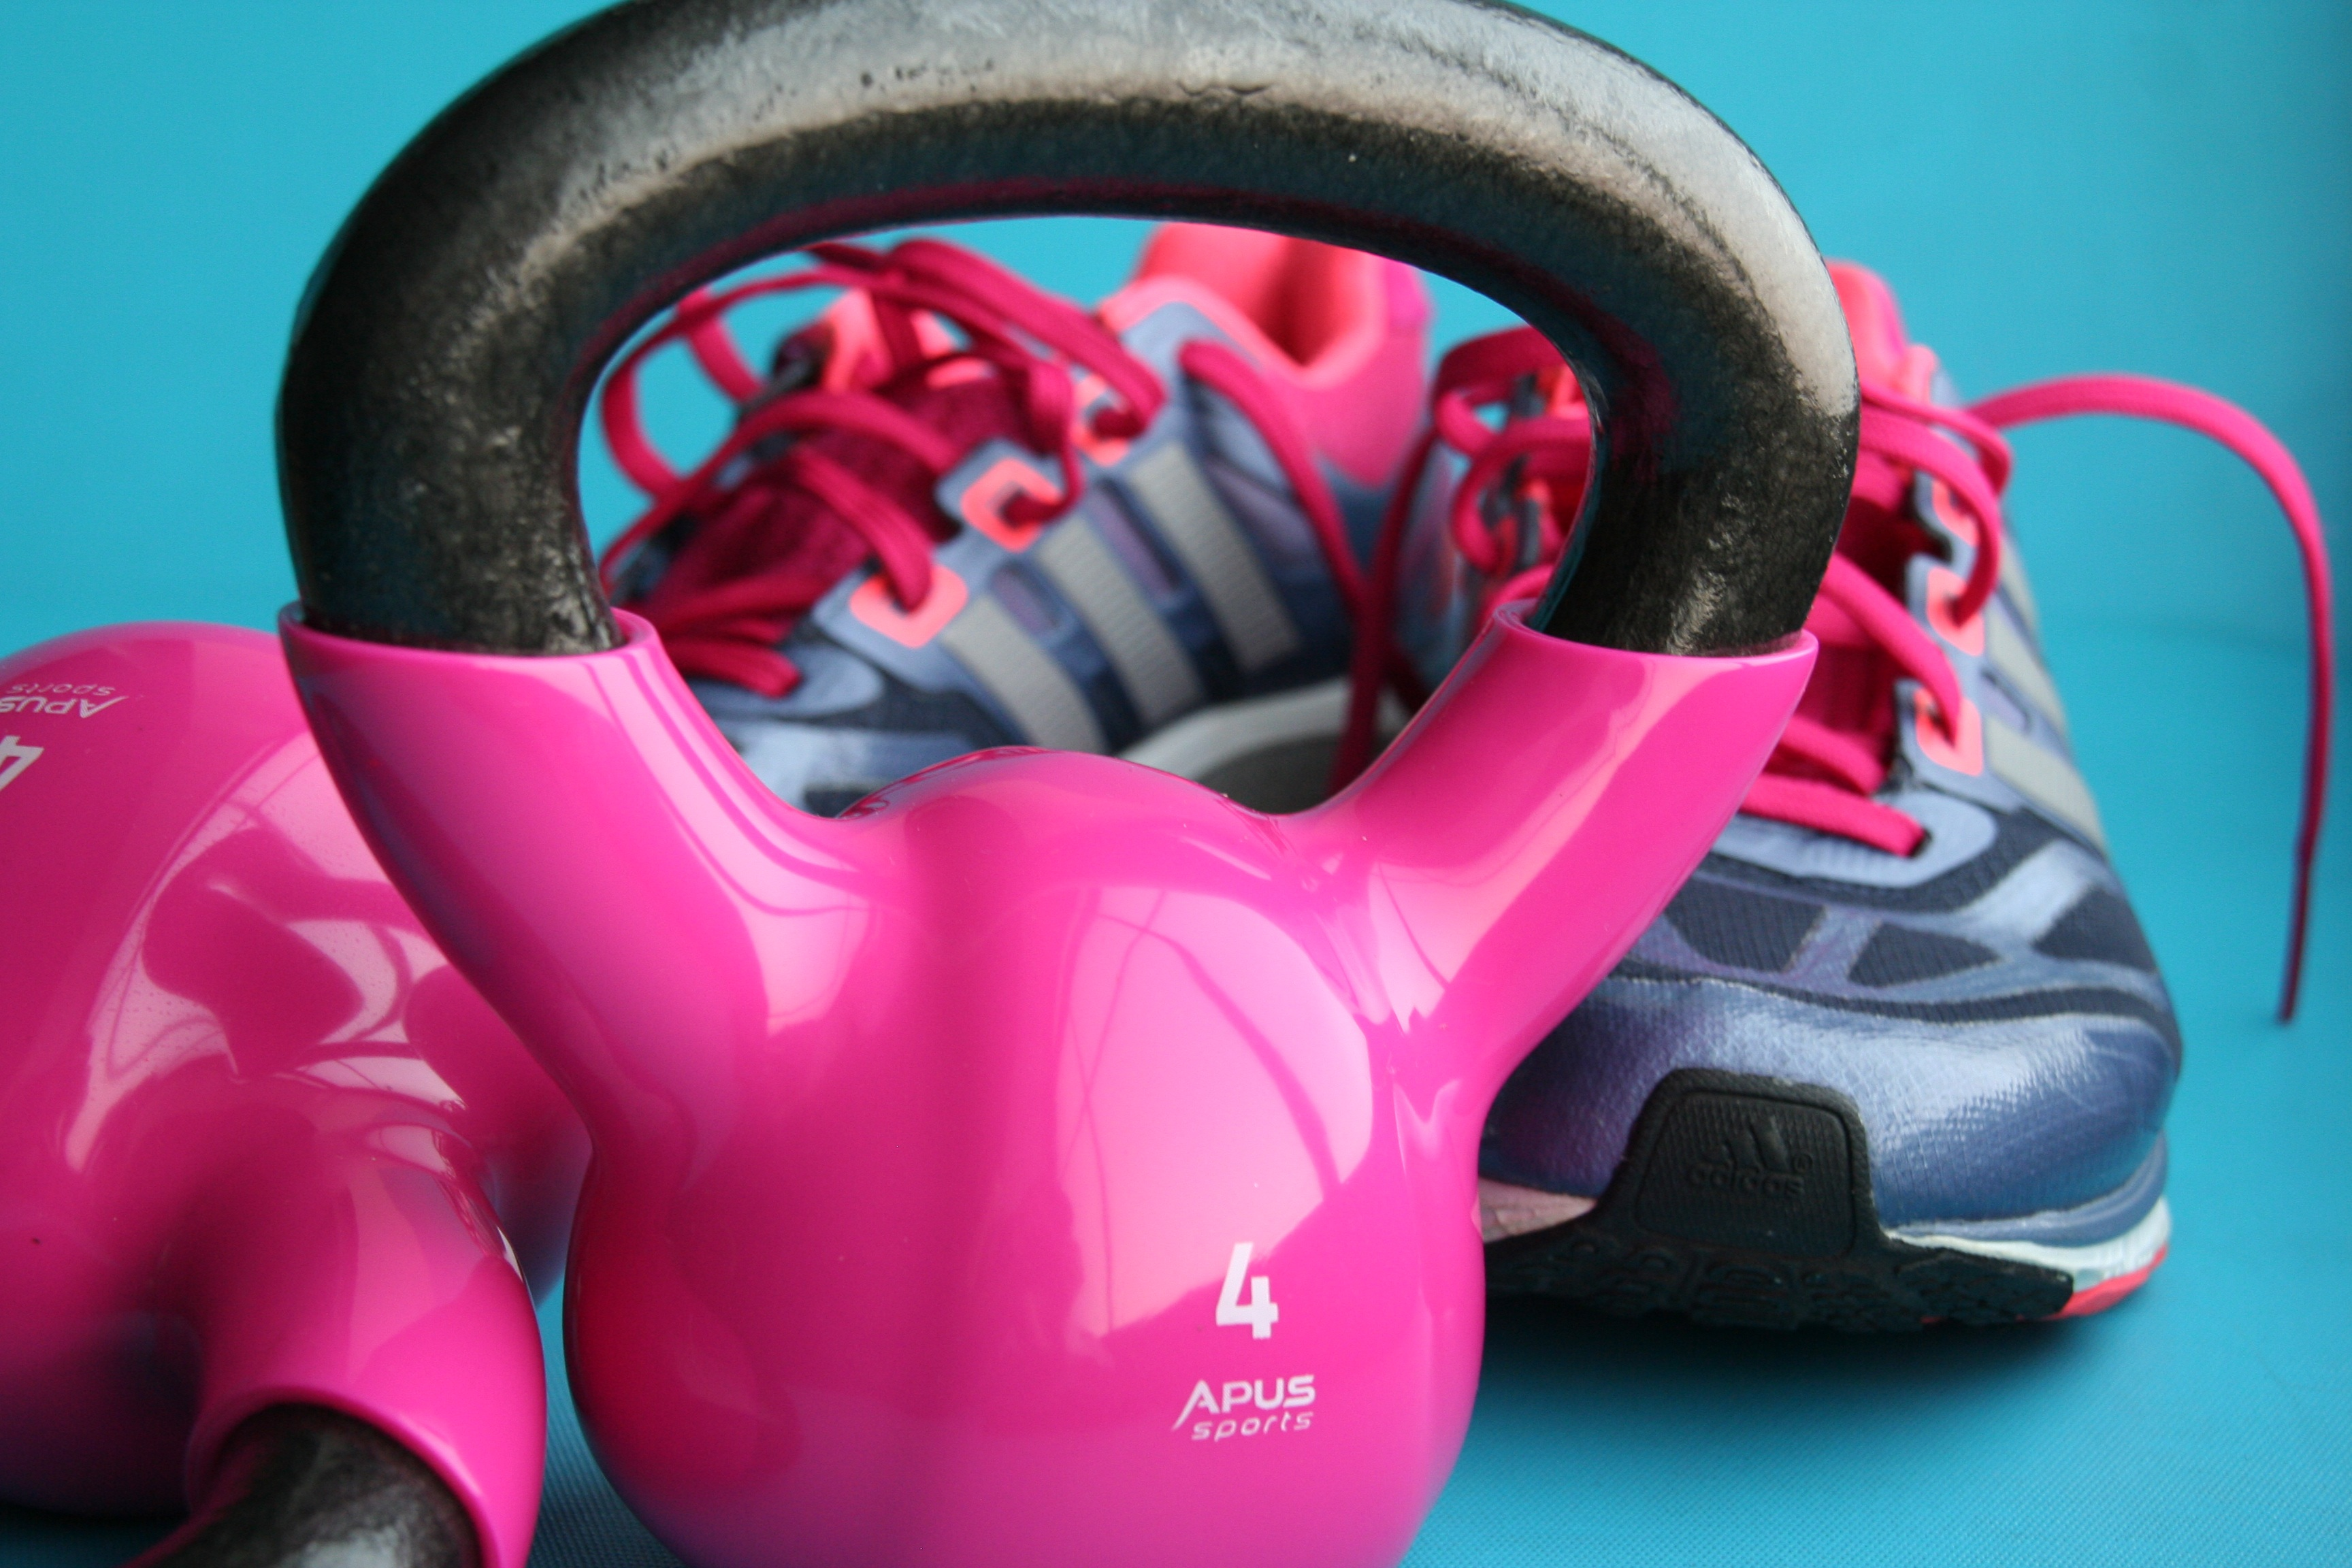 Kettlebell and Trainers